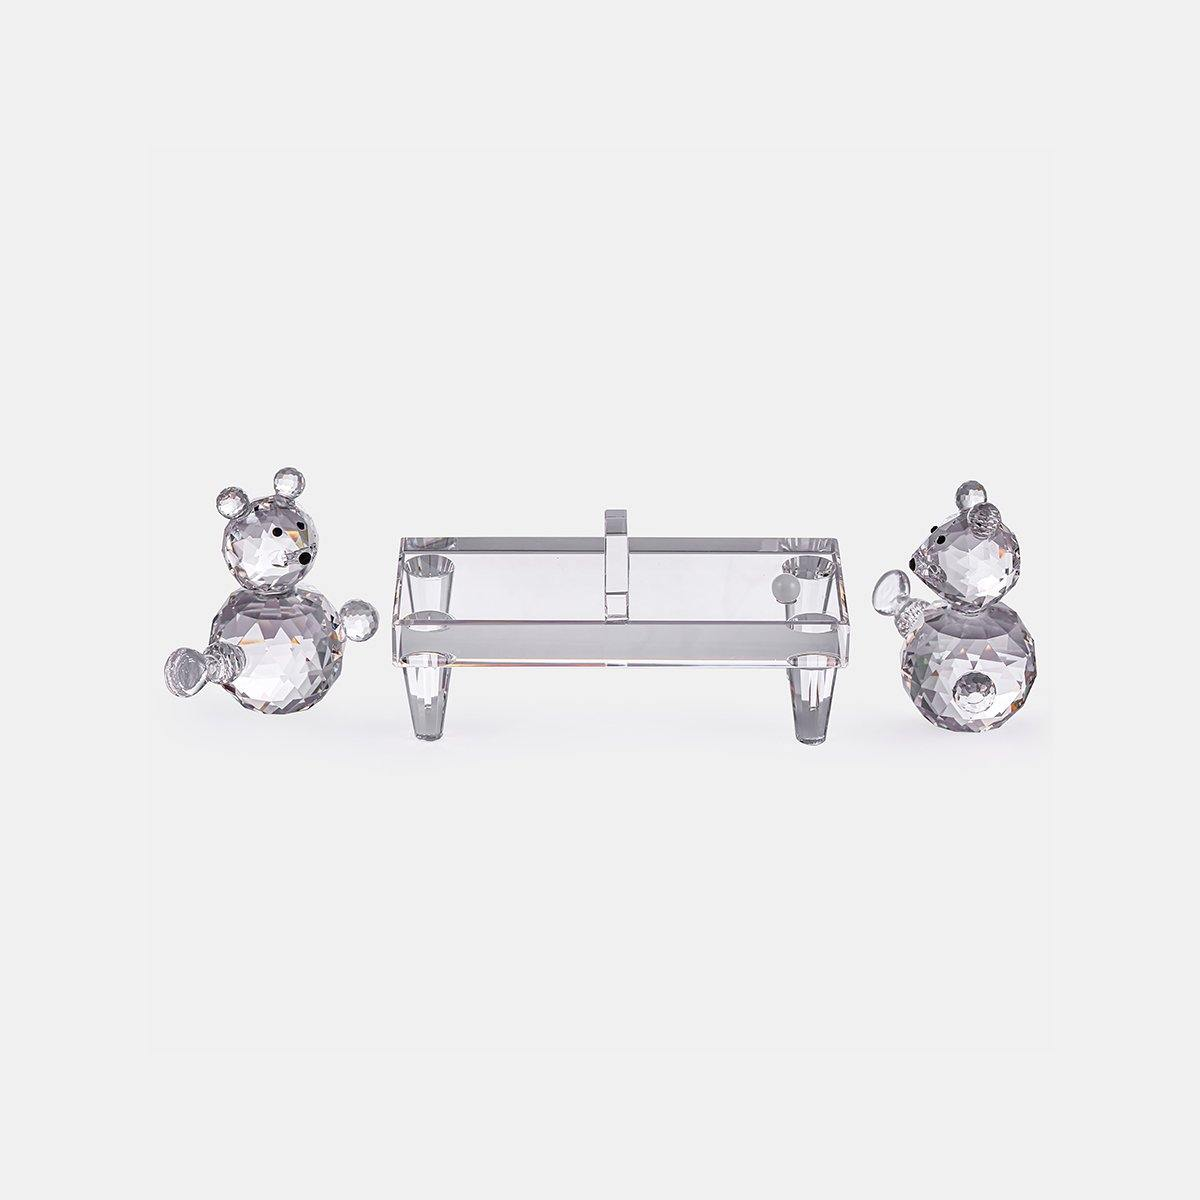 2 Bears - Clear - Playing Tennis Table